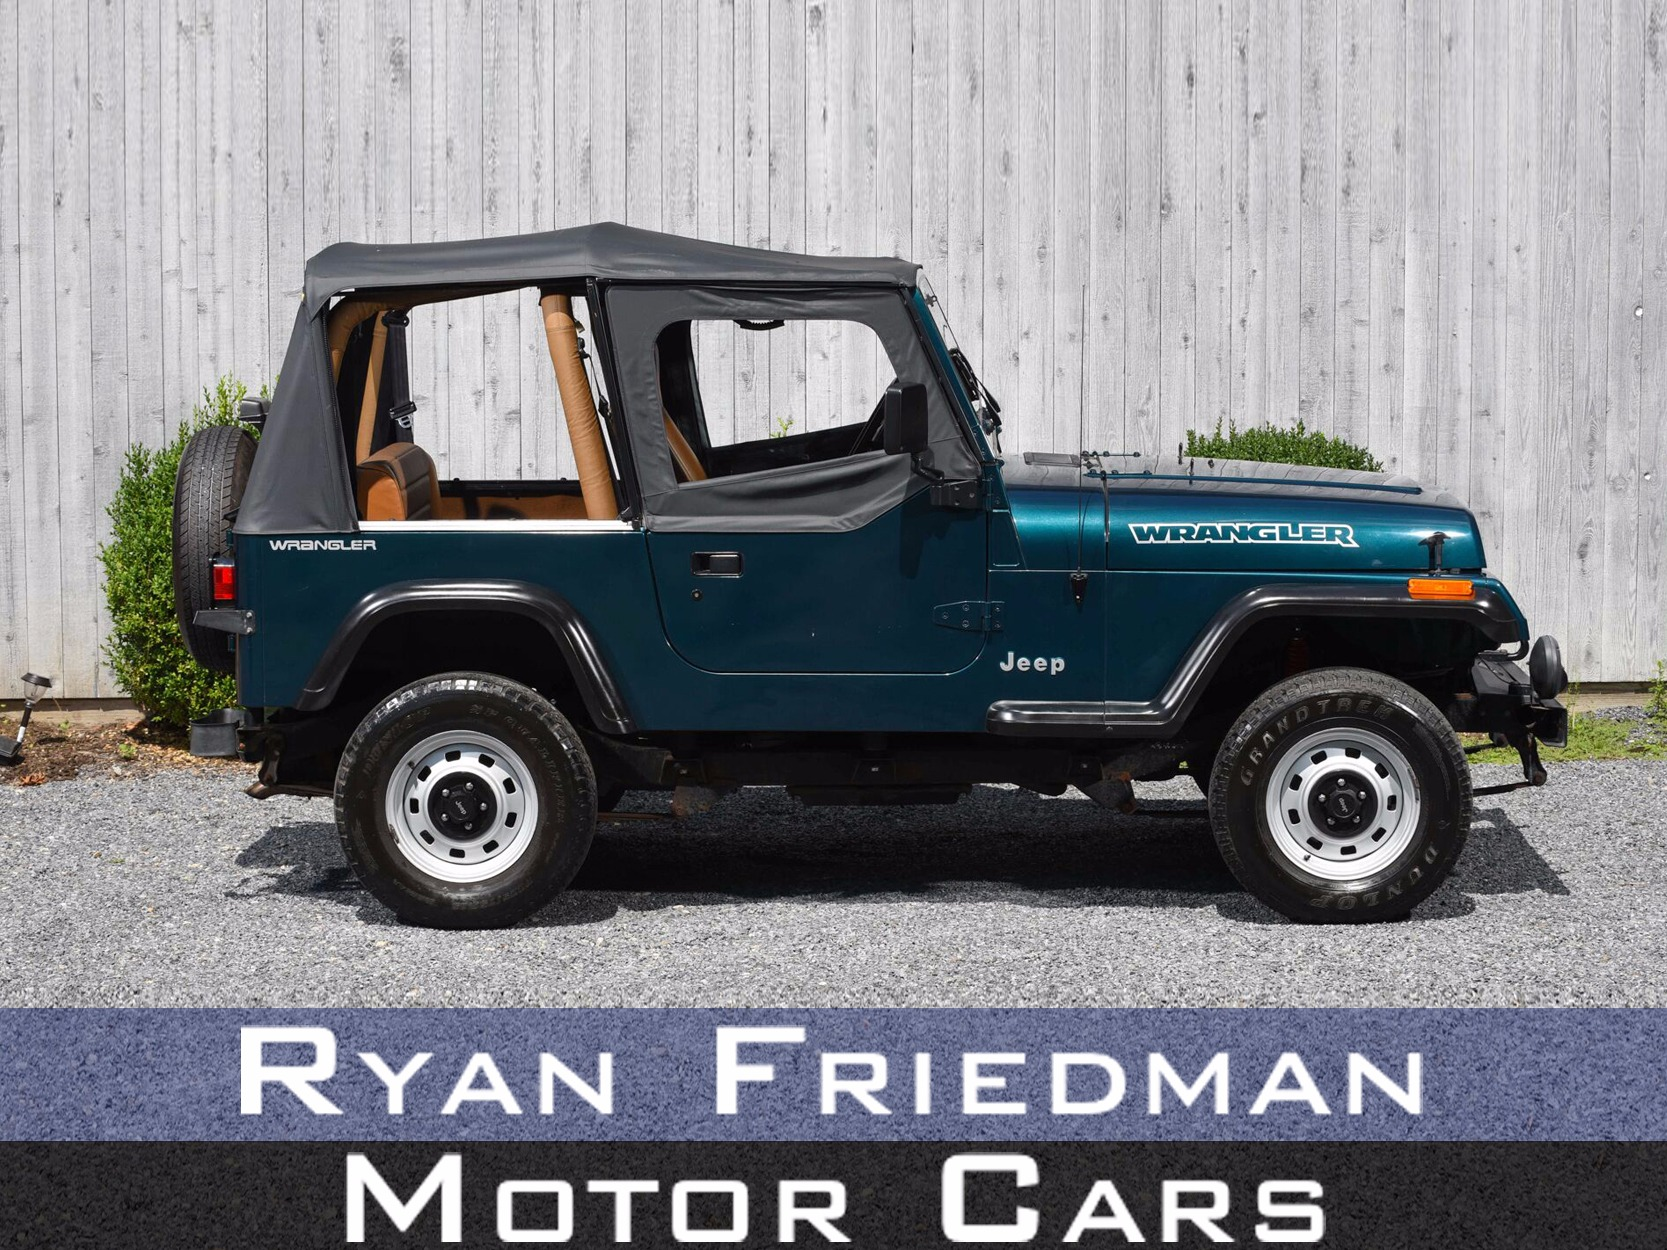 1995 jeep wrangler rio grande stock 50 for sale near valley stream ny ny jeep dealer. Black Bedroom Furniture Sets. Home Design Ideas